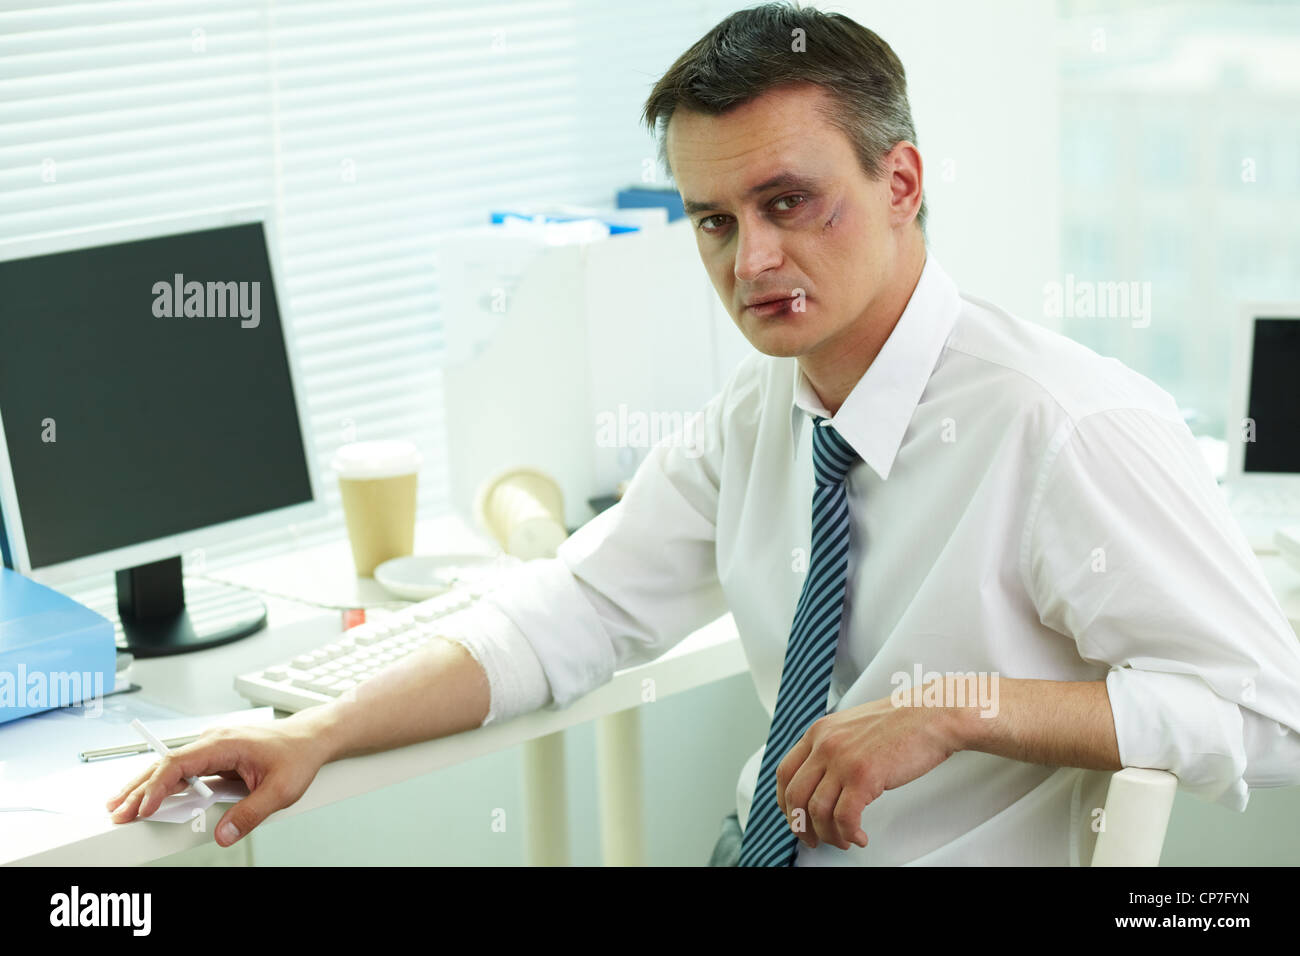 Portrait of businessman with bruised face looking at camera - Stock Image